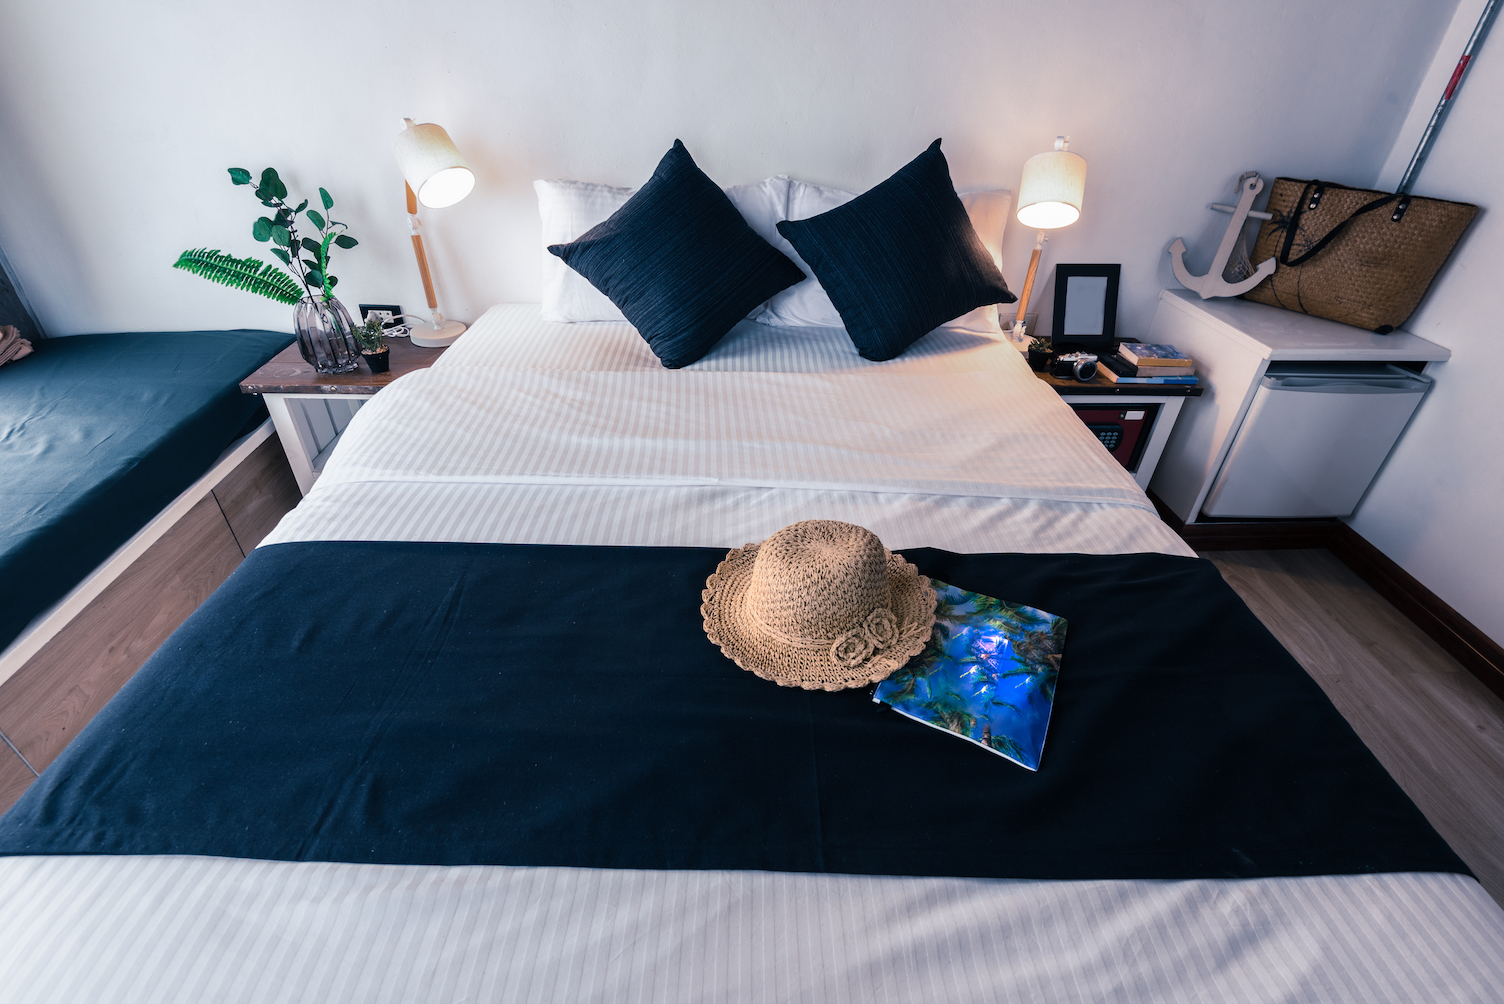 While Airbnb has opened a new and exciting arena in the realm of vacation rentals, there are questions about the company's ability to guarantee user safety.